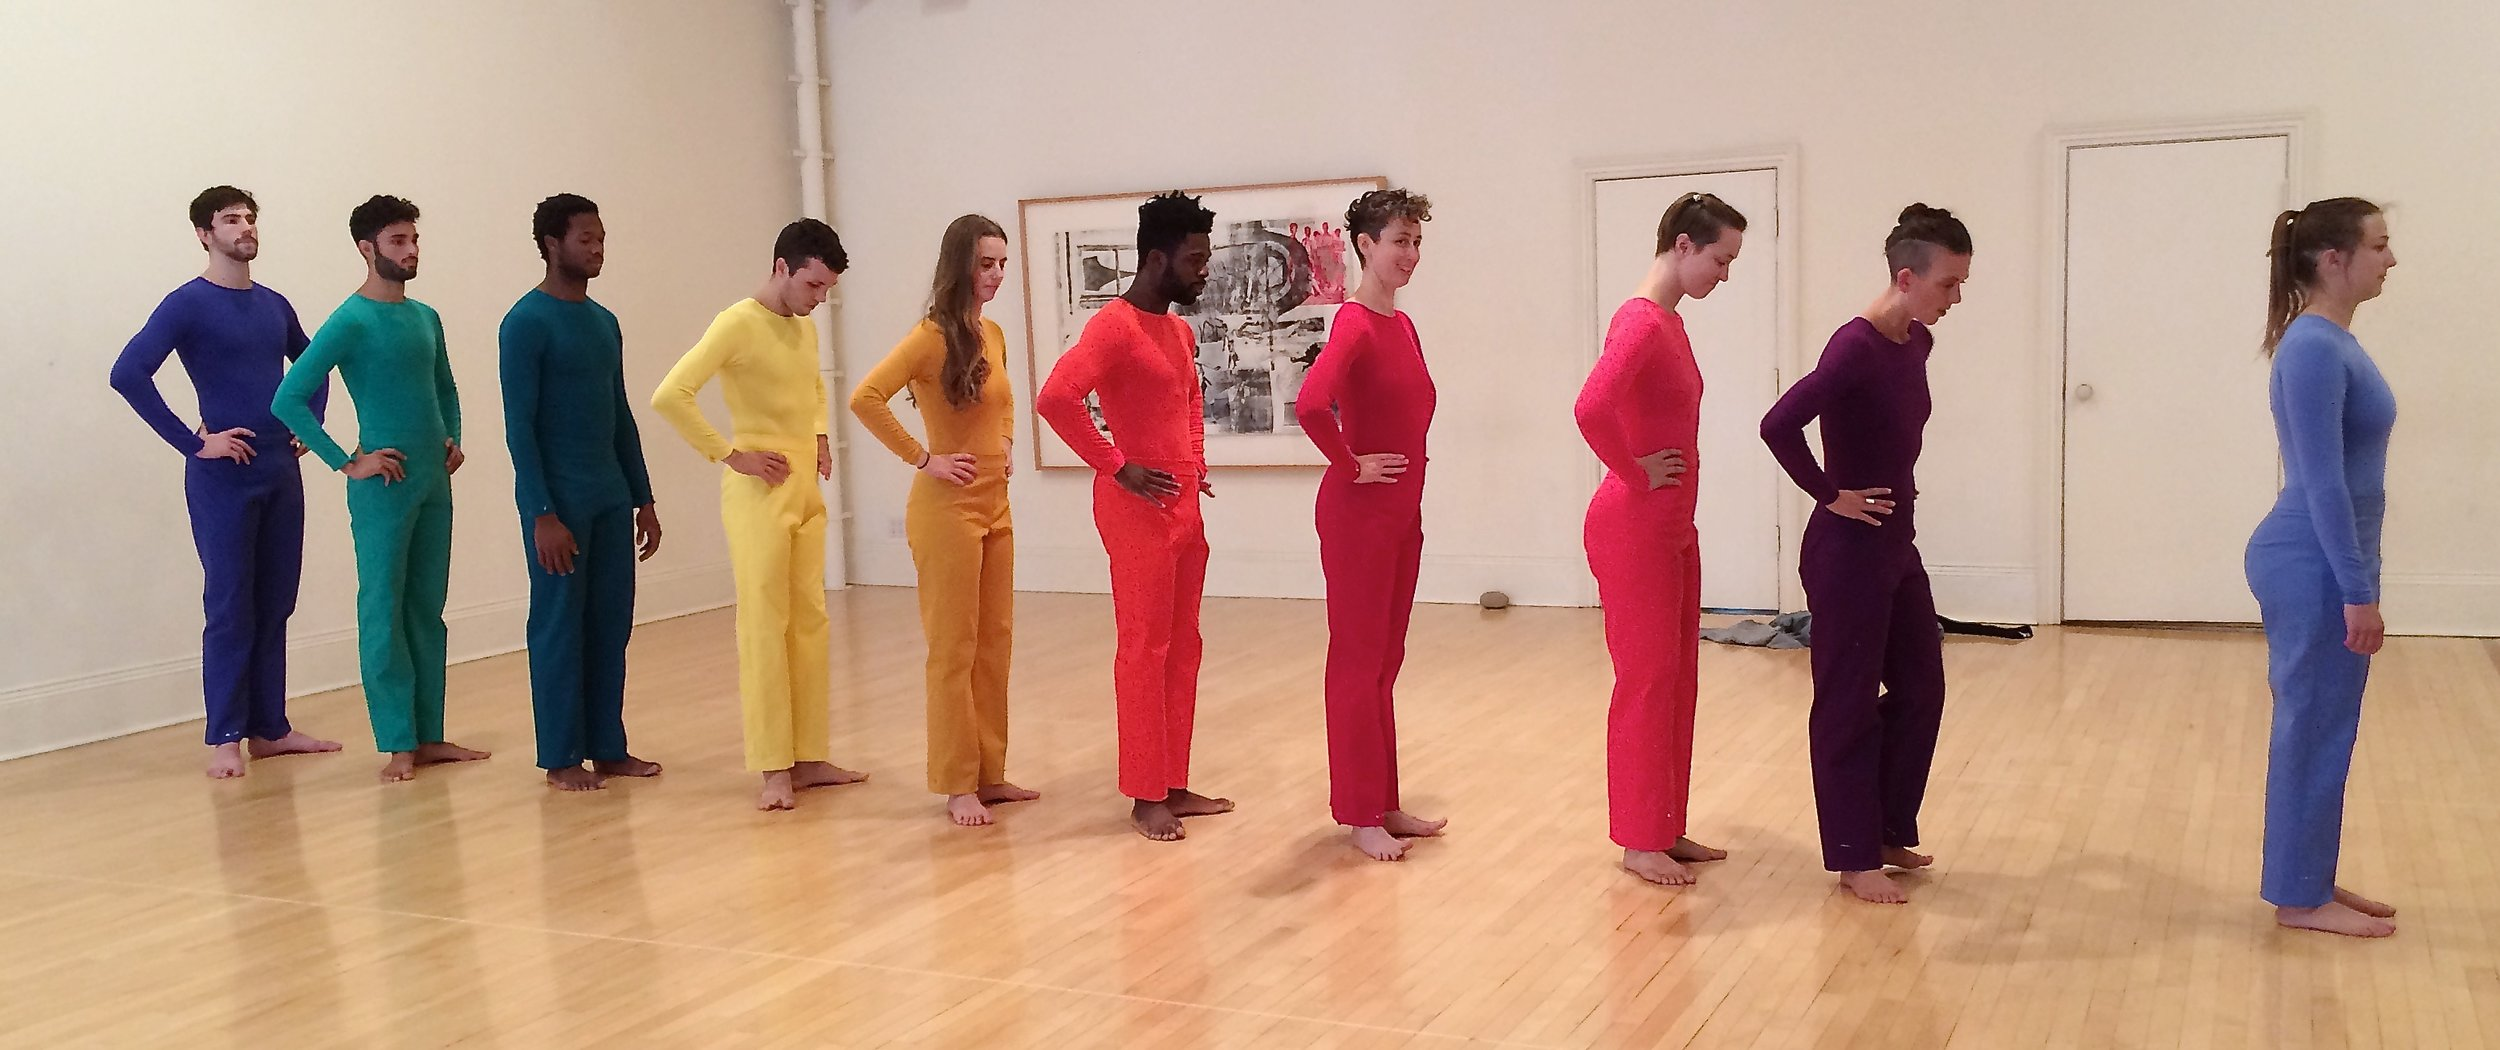 checking the pant hems in the rehearsal studio